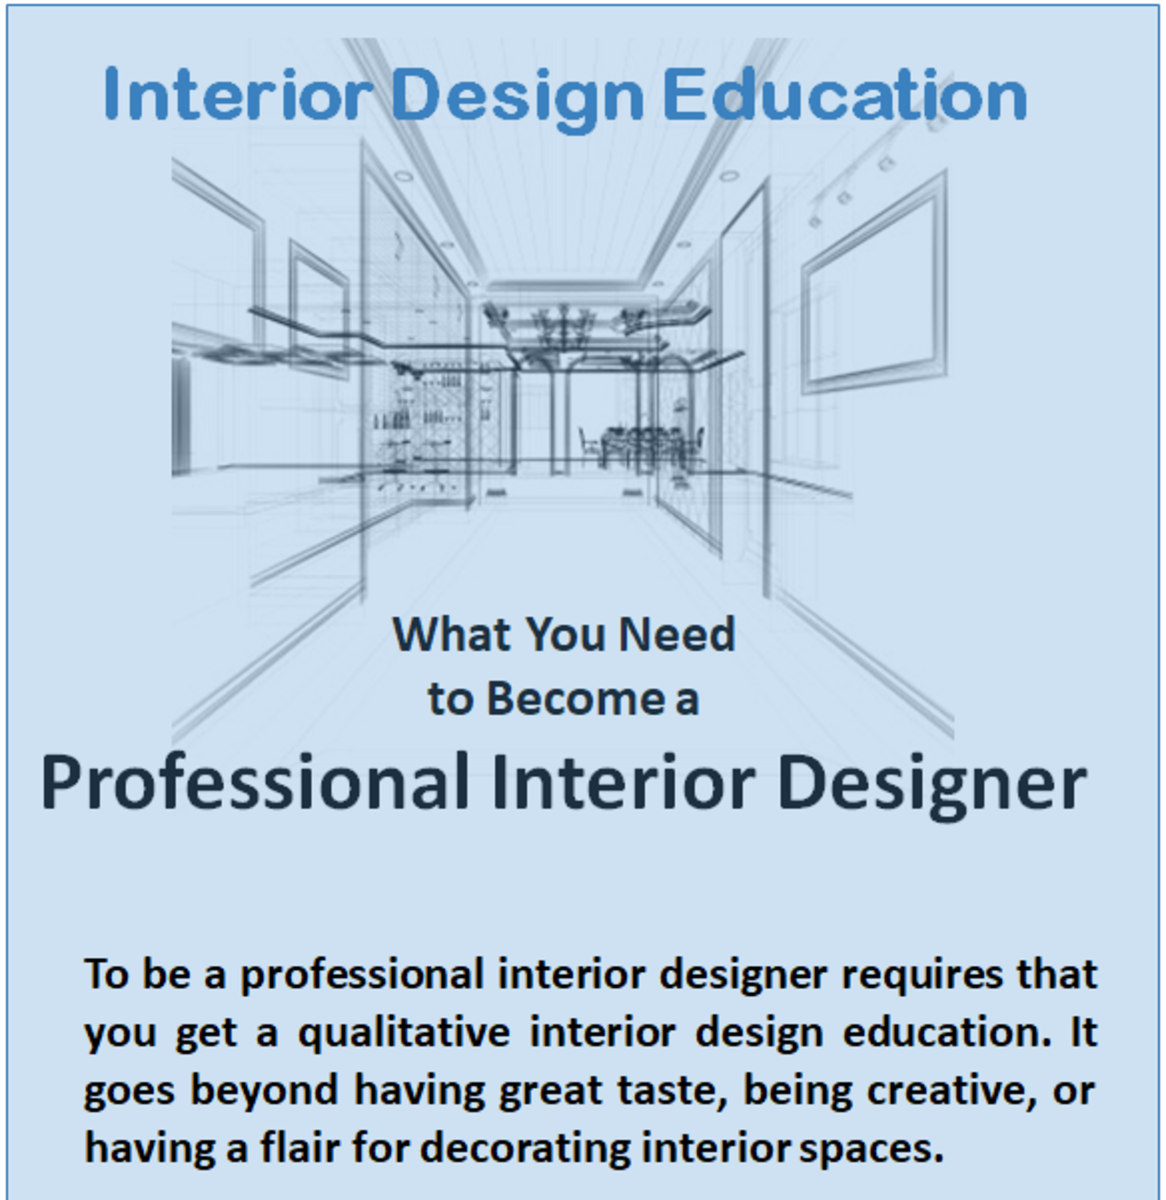 Education You'll Need to Learn Interior Design